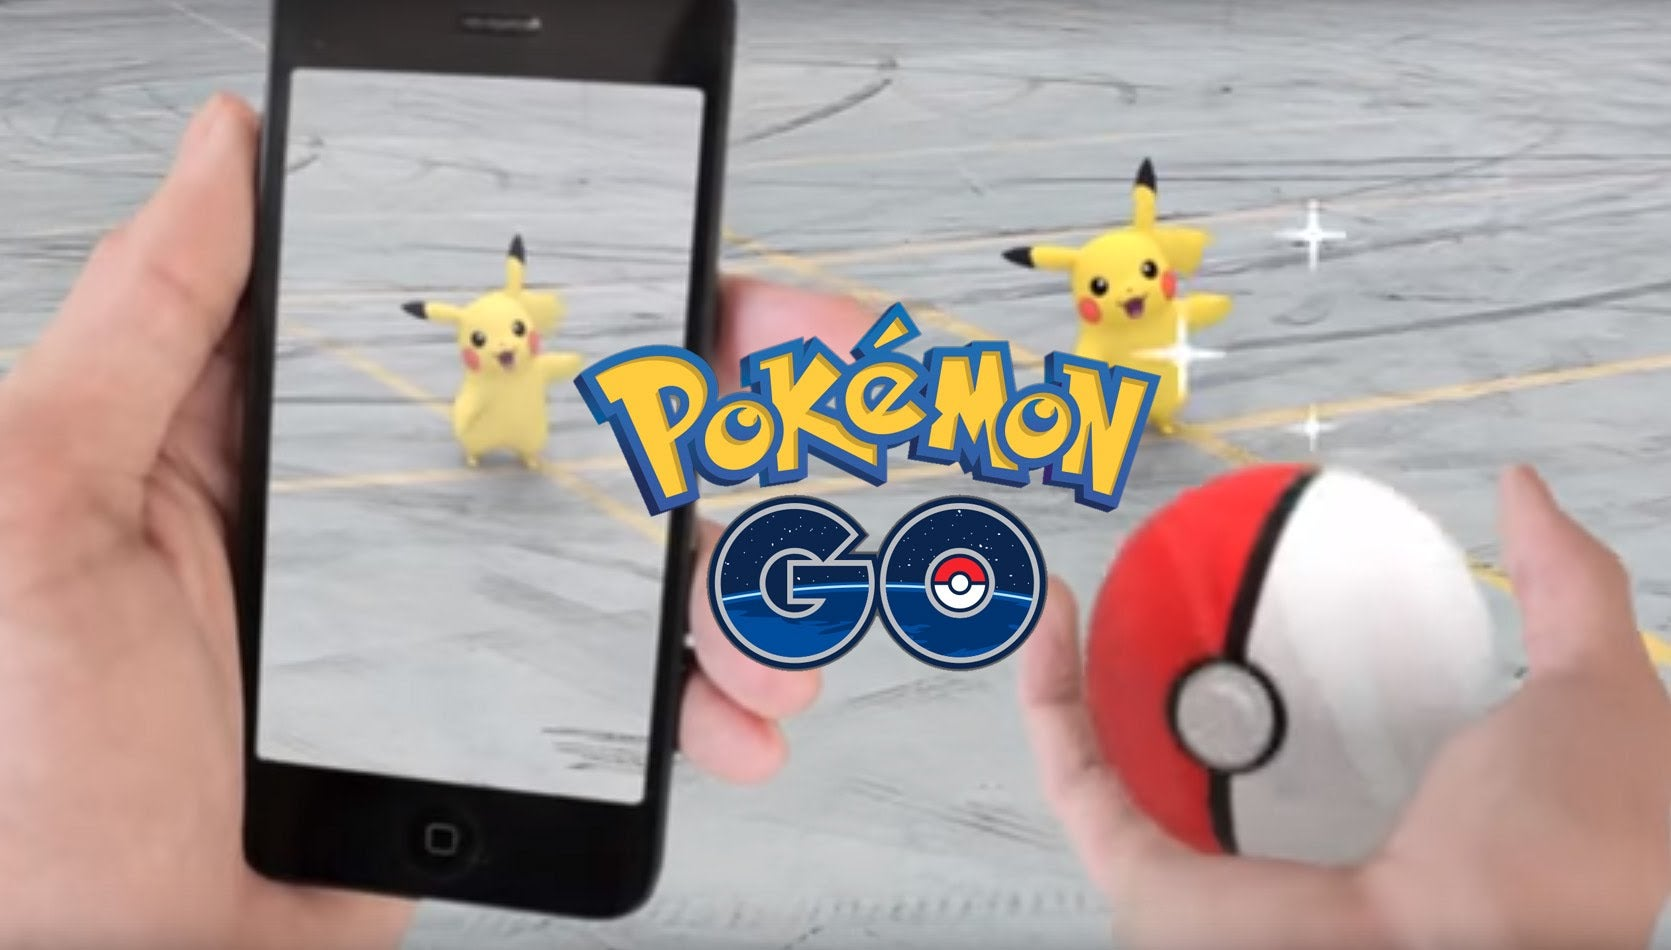 Pokémon GO takes the nation by storm